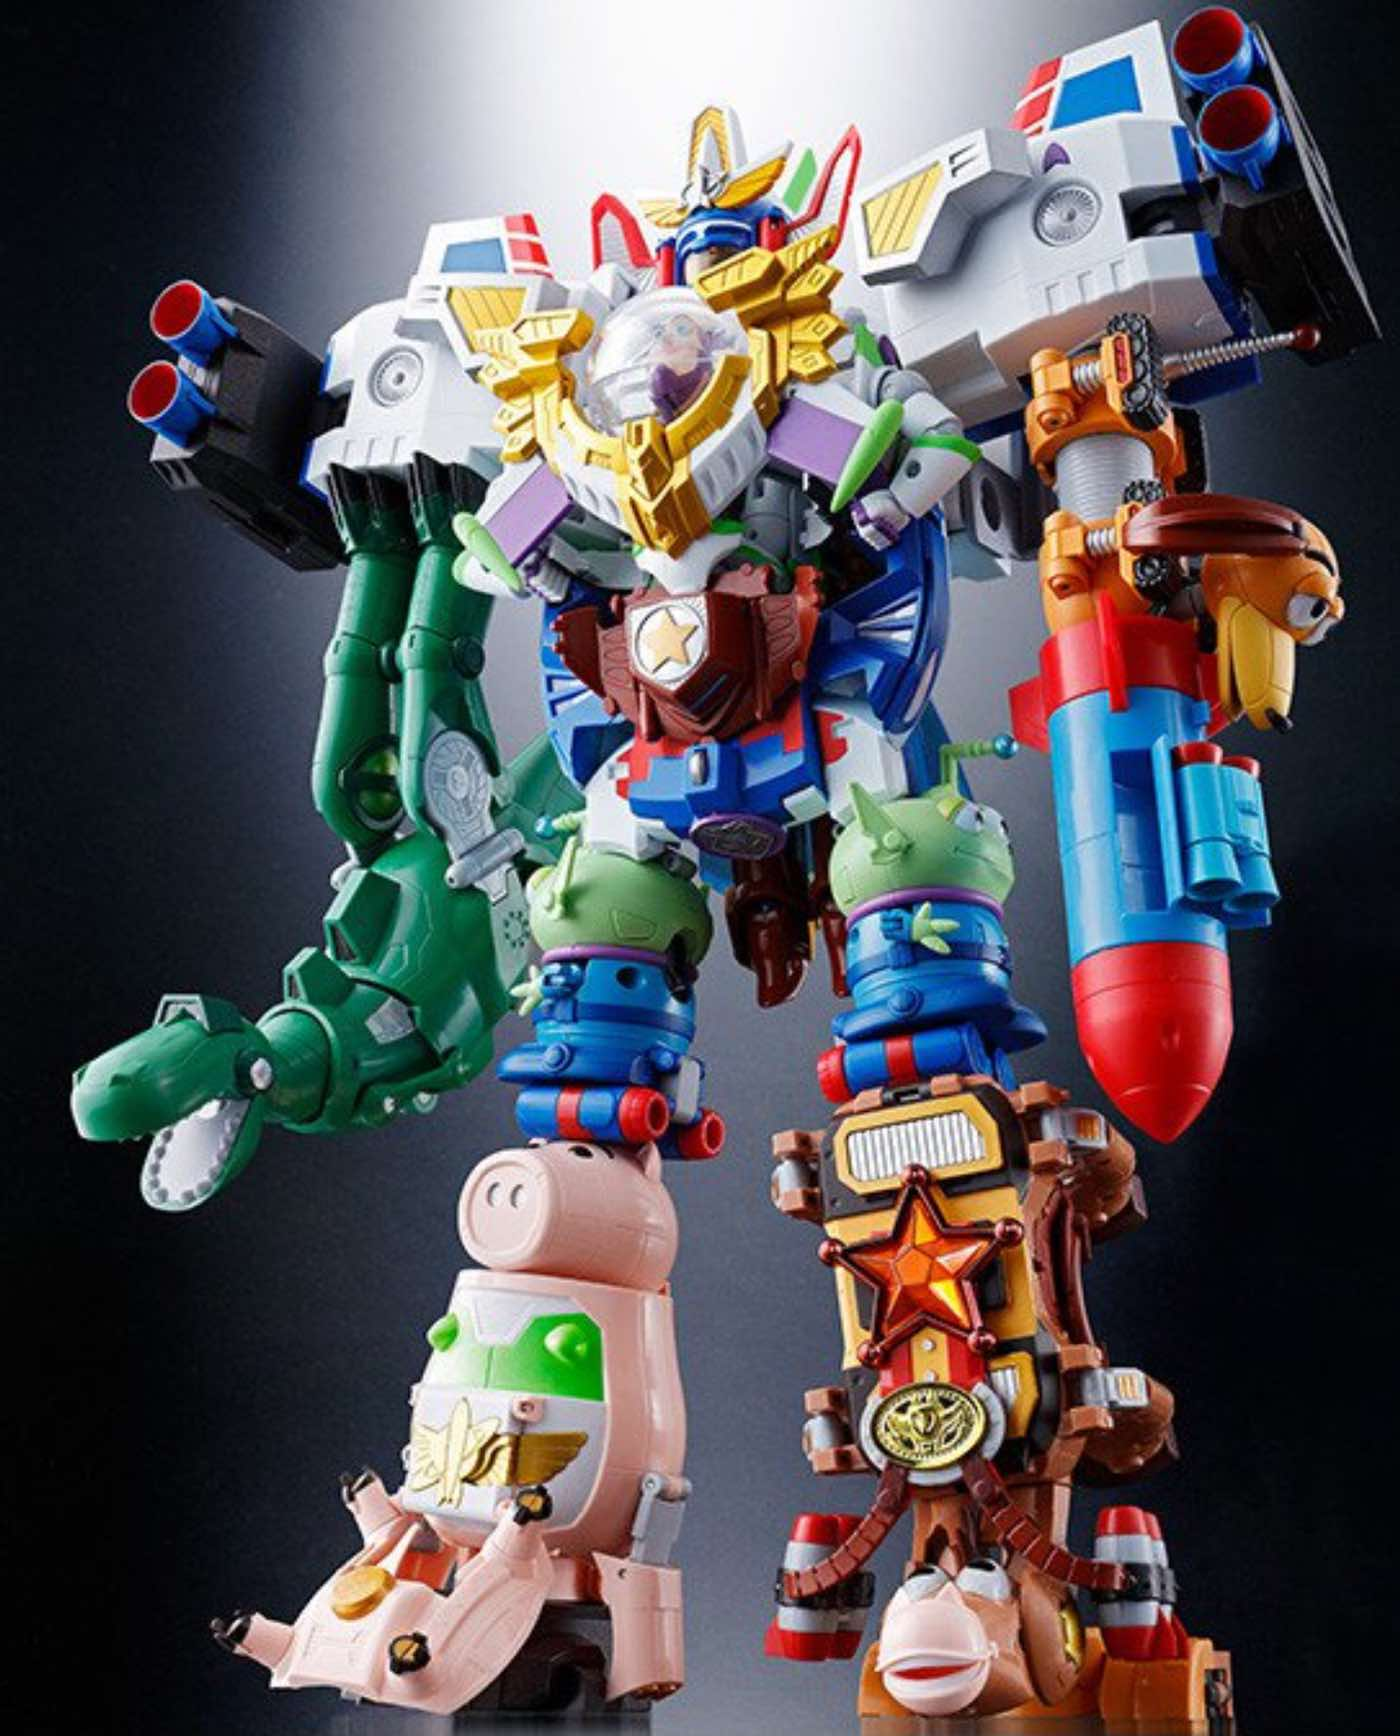 disney-bandai-toy-story-chogokin-mecha-toys-super-combination-gangreat-king